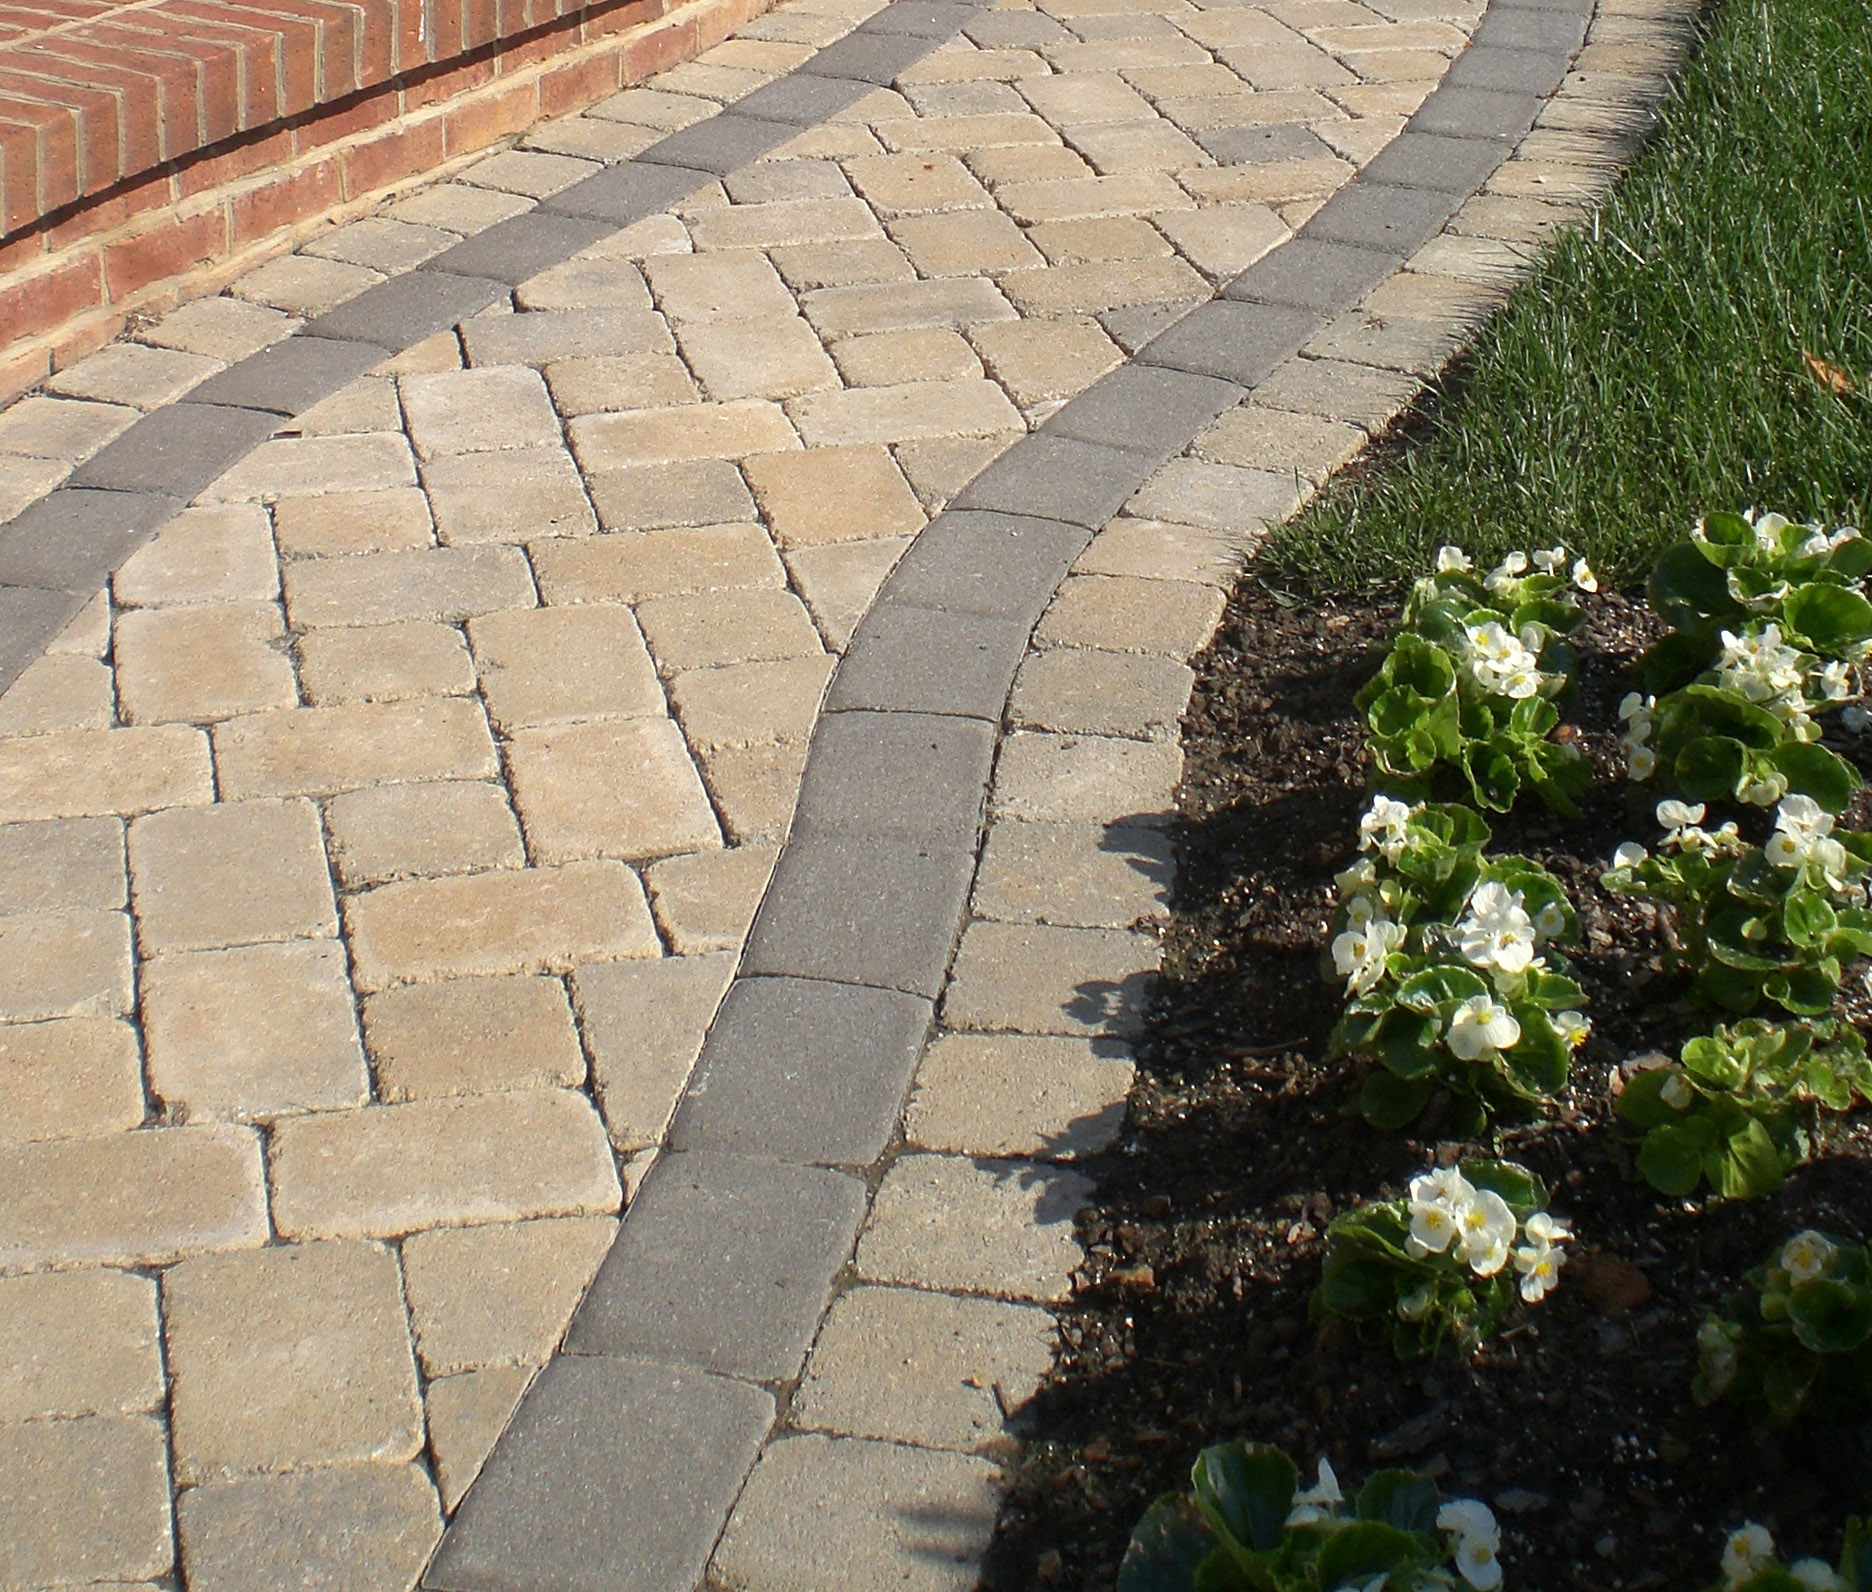 Brentwood to feature new reading rock pavers brentwood for Landscaping rocks you can walk on